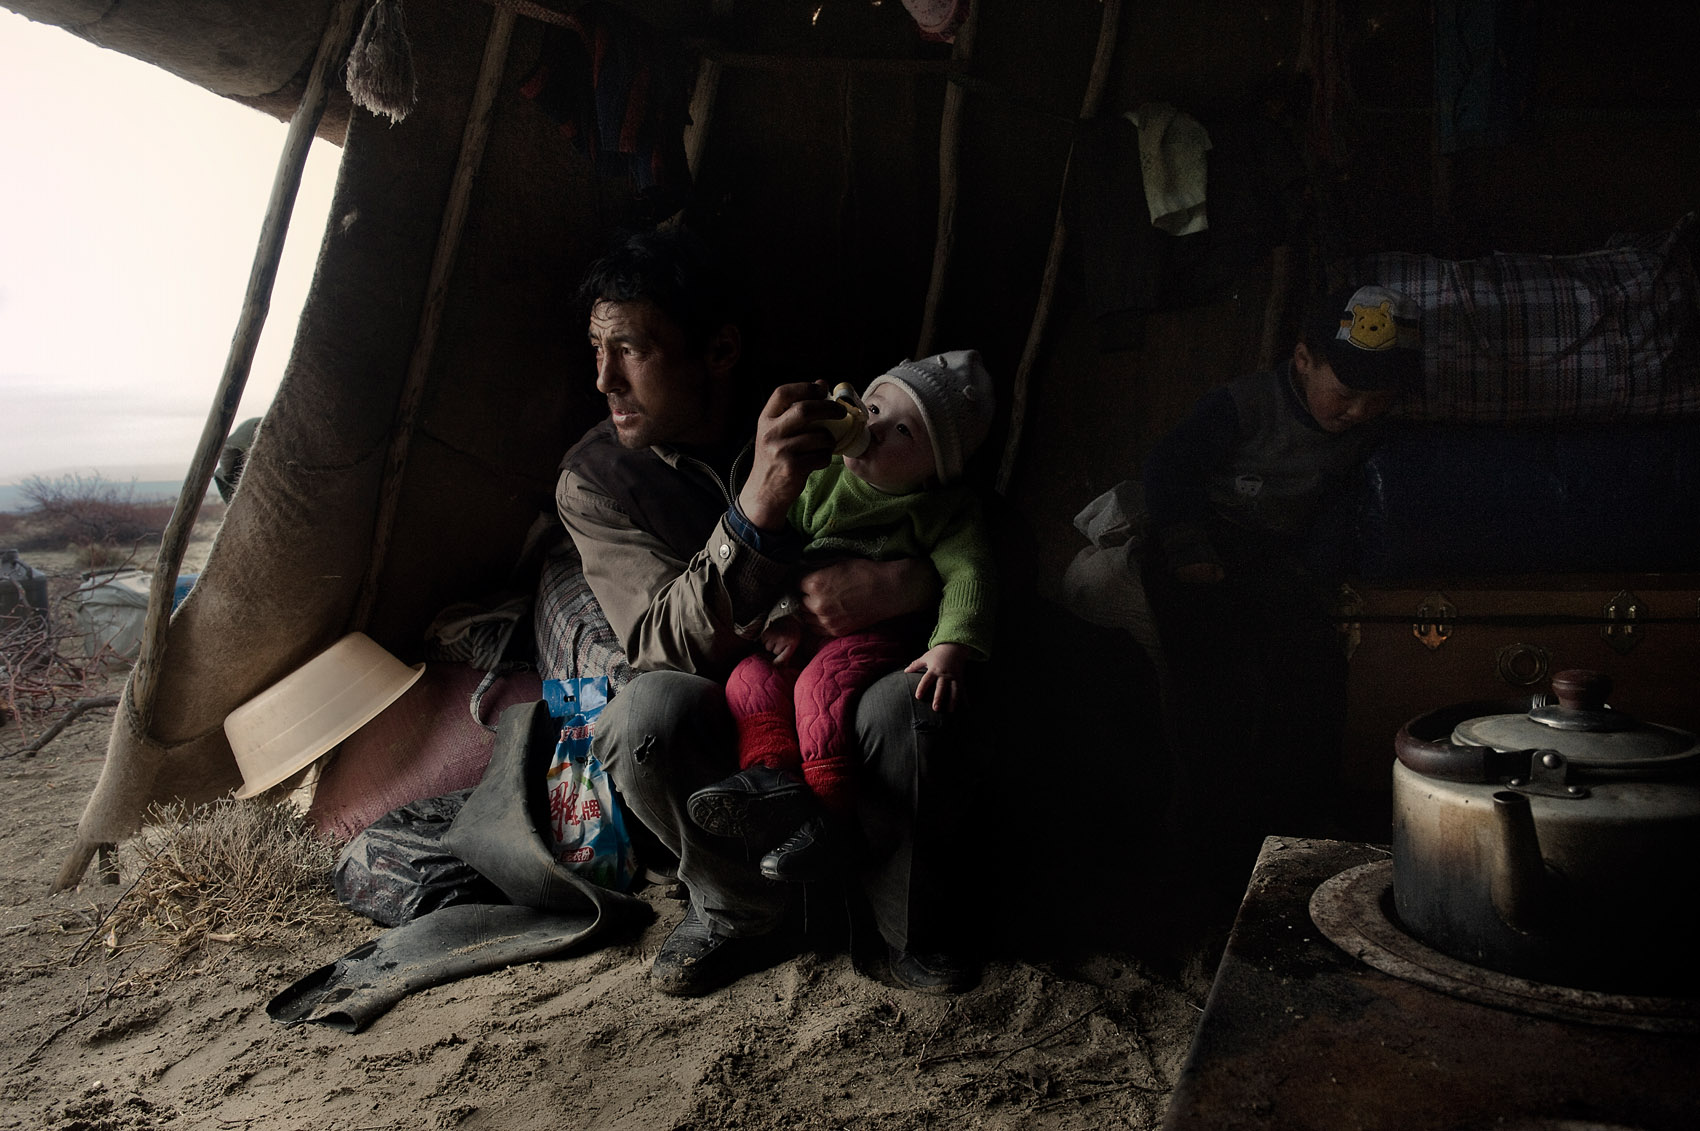 Near Buerqin (Xinjiang), in his tent, a Kazakh nomad feeding his 9 months old daughter, next to his son. Some in his extended family have moved to nearby Kazakhstan, as they were forced to sell their herd. The family owns a dozen camels, 25 cows and a hundred sheep and earns between RMB 10 000 and 25 000 ($ 4000)a year. They are thinking of leaving Xinjiang for Kazakhstan.